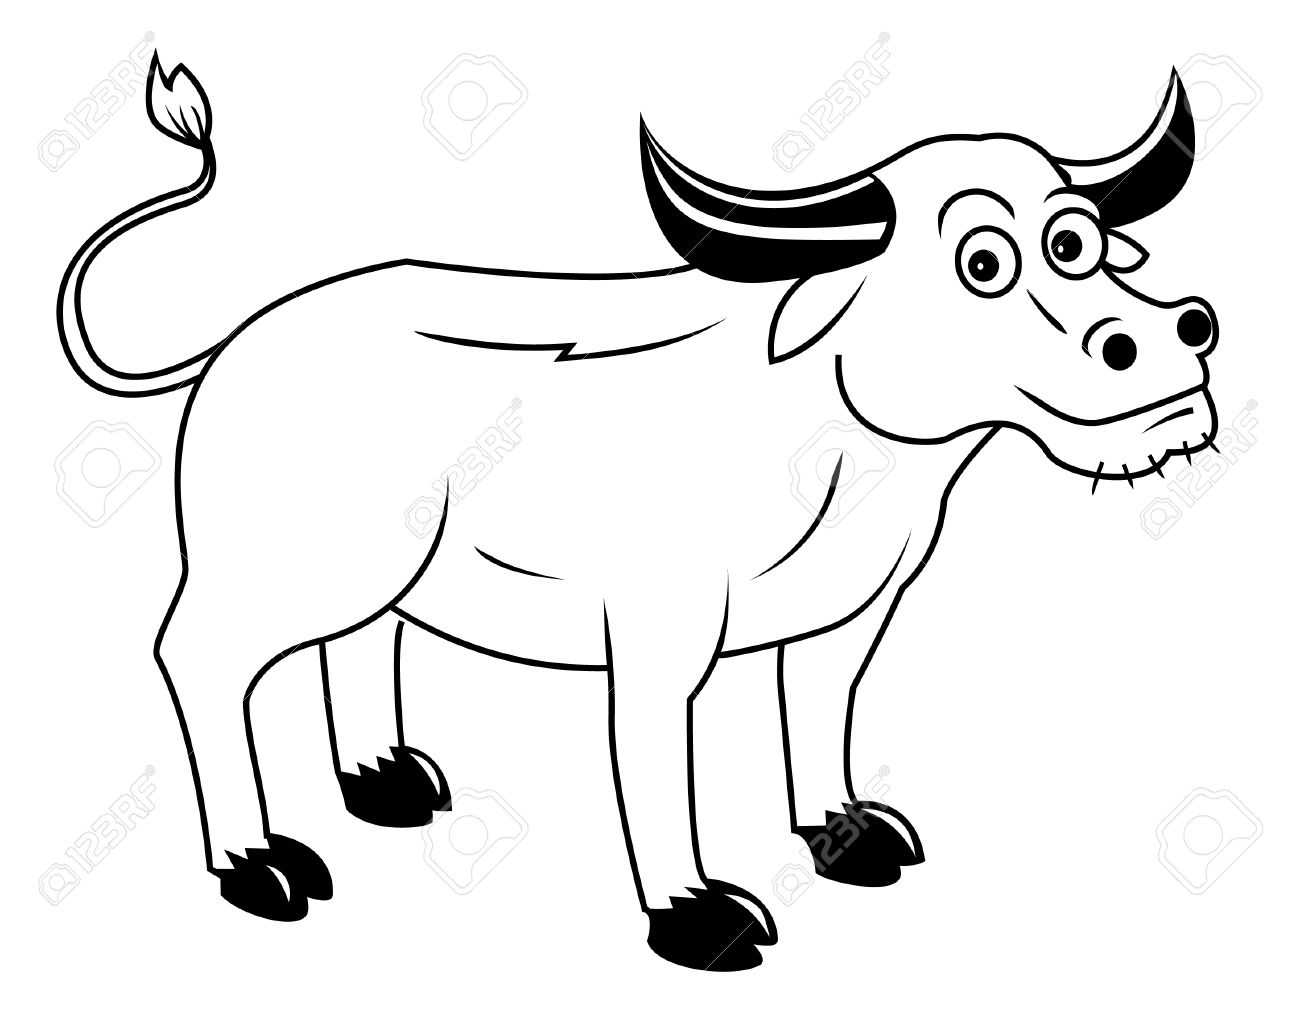 Buffalo clipart black and white 5 » Clipart Station.